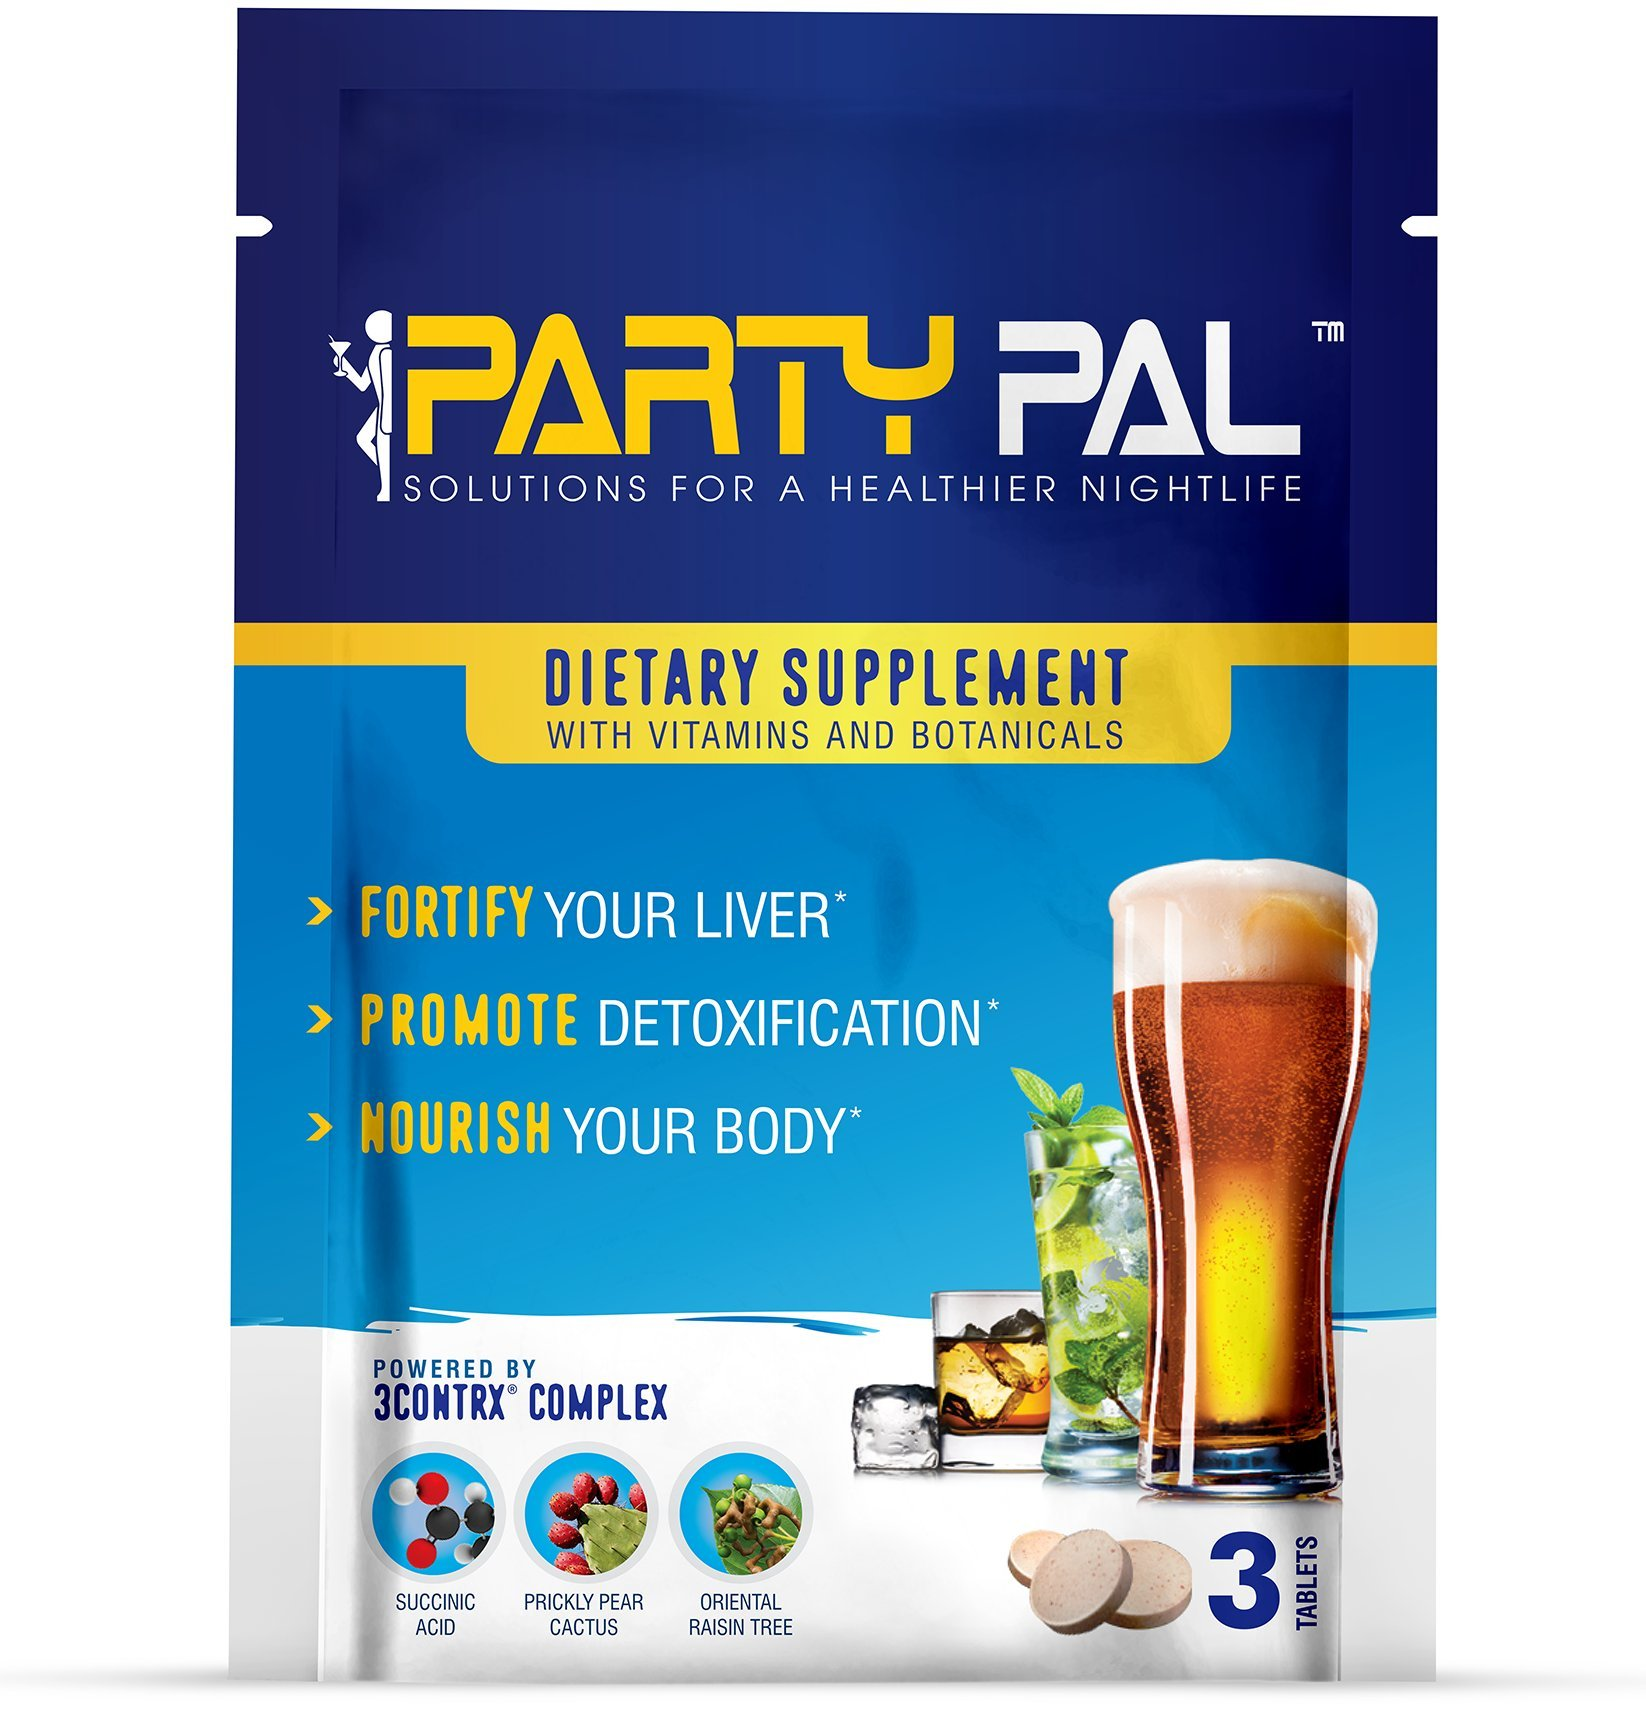 PartyPal™ - Natural Hangover Relief & Hangover Prevention | 100-PACK Hangover Pills Detox Kit | Enhance your body's ability to metabolize toxins | Replenish & Revitalize | 100% Money Back Guarantee!